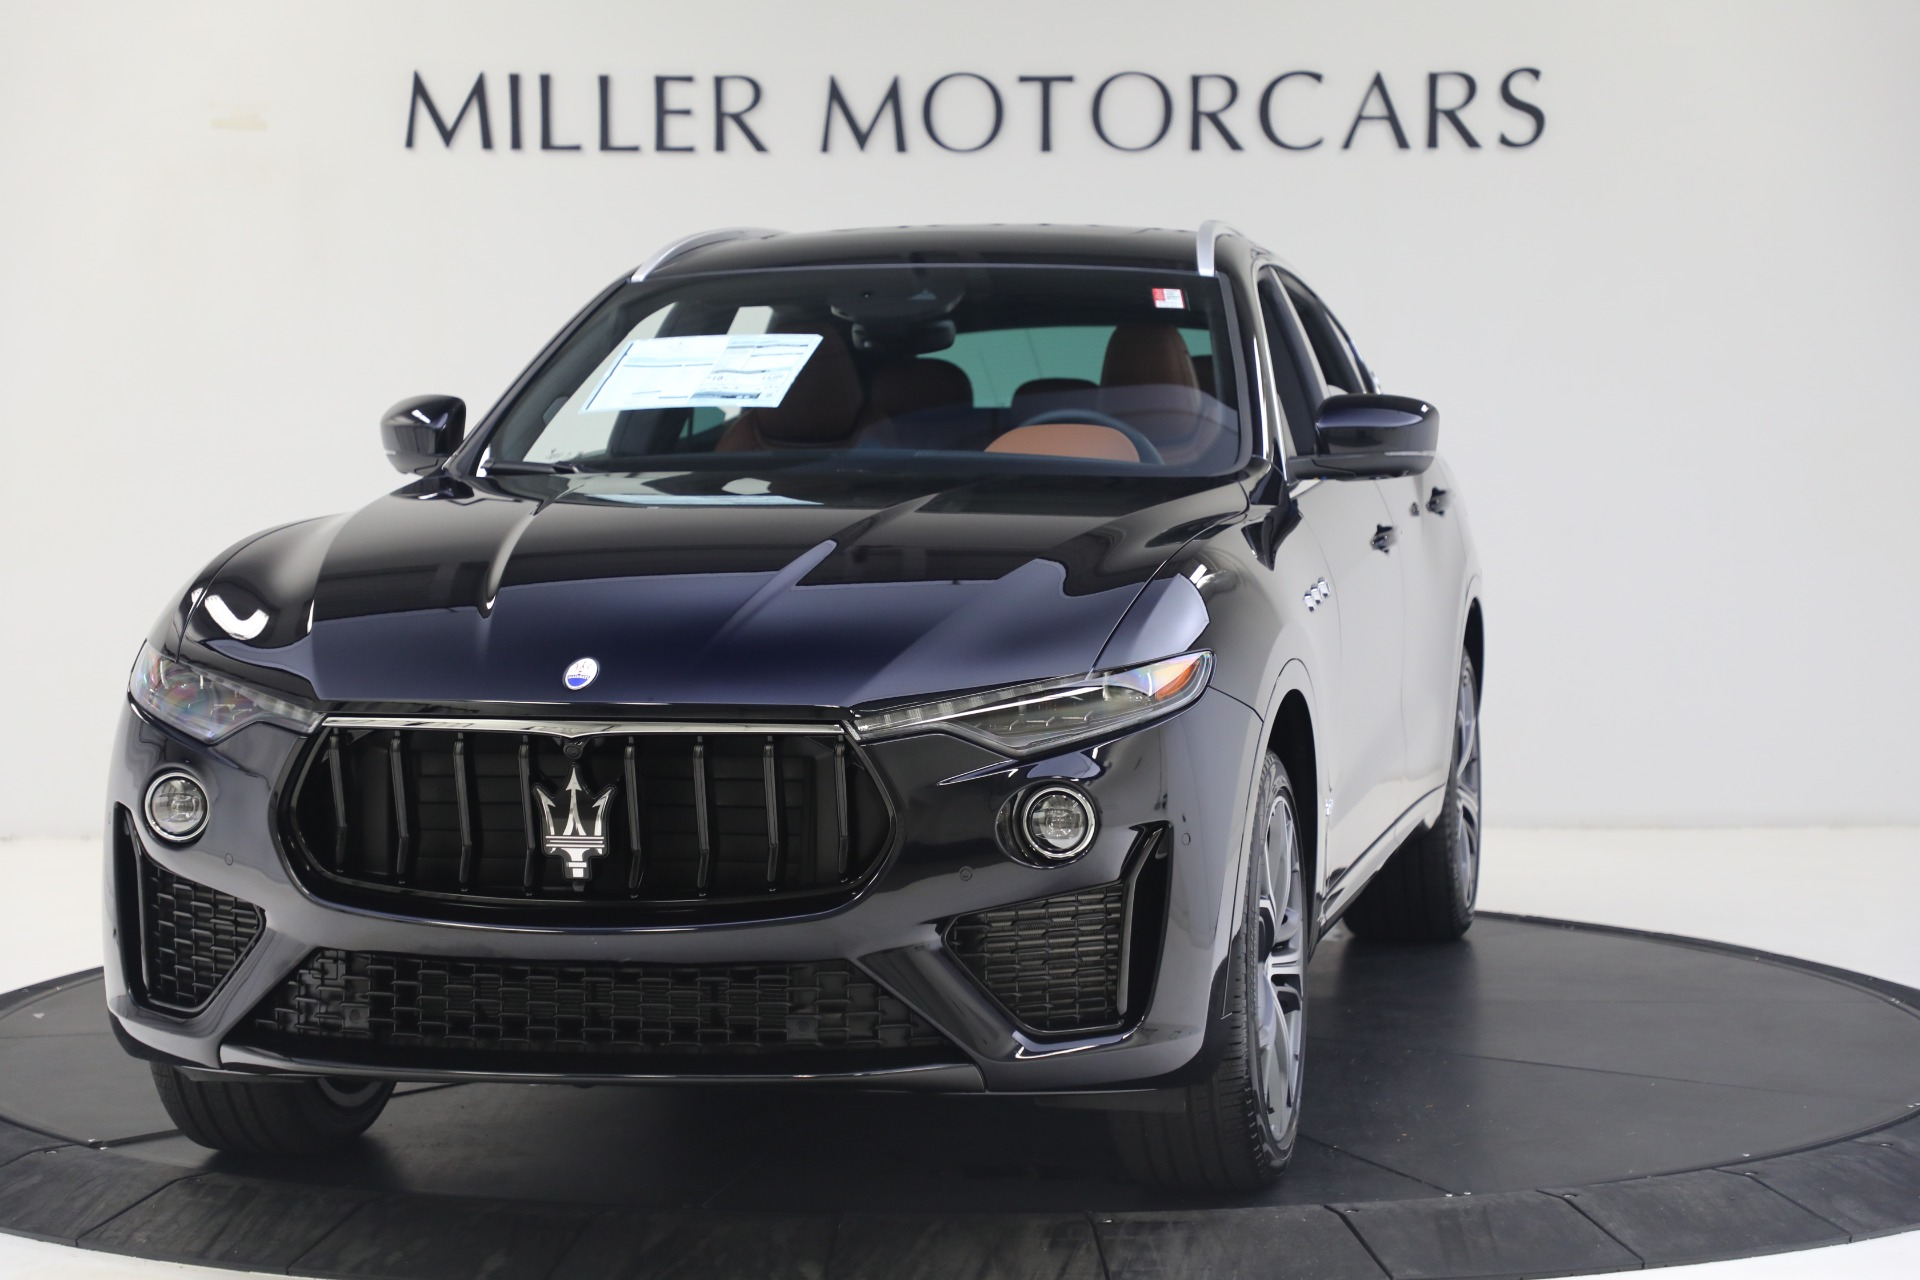 New 2021 Maserati Levante S GranSport for sale $112,799 at Rolls-Royce Motor Cars Greenwich in Greenwich CT 06830 1